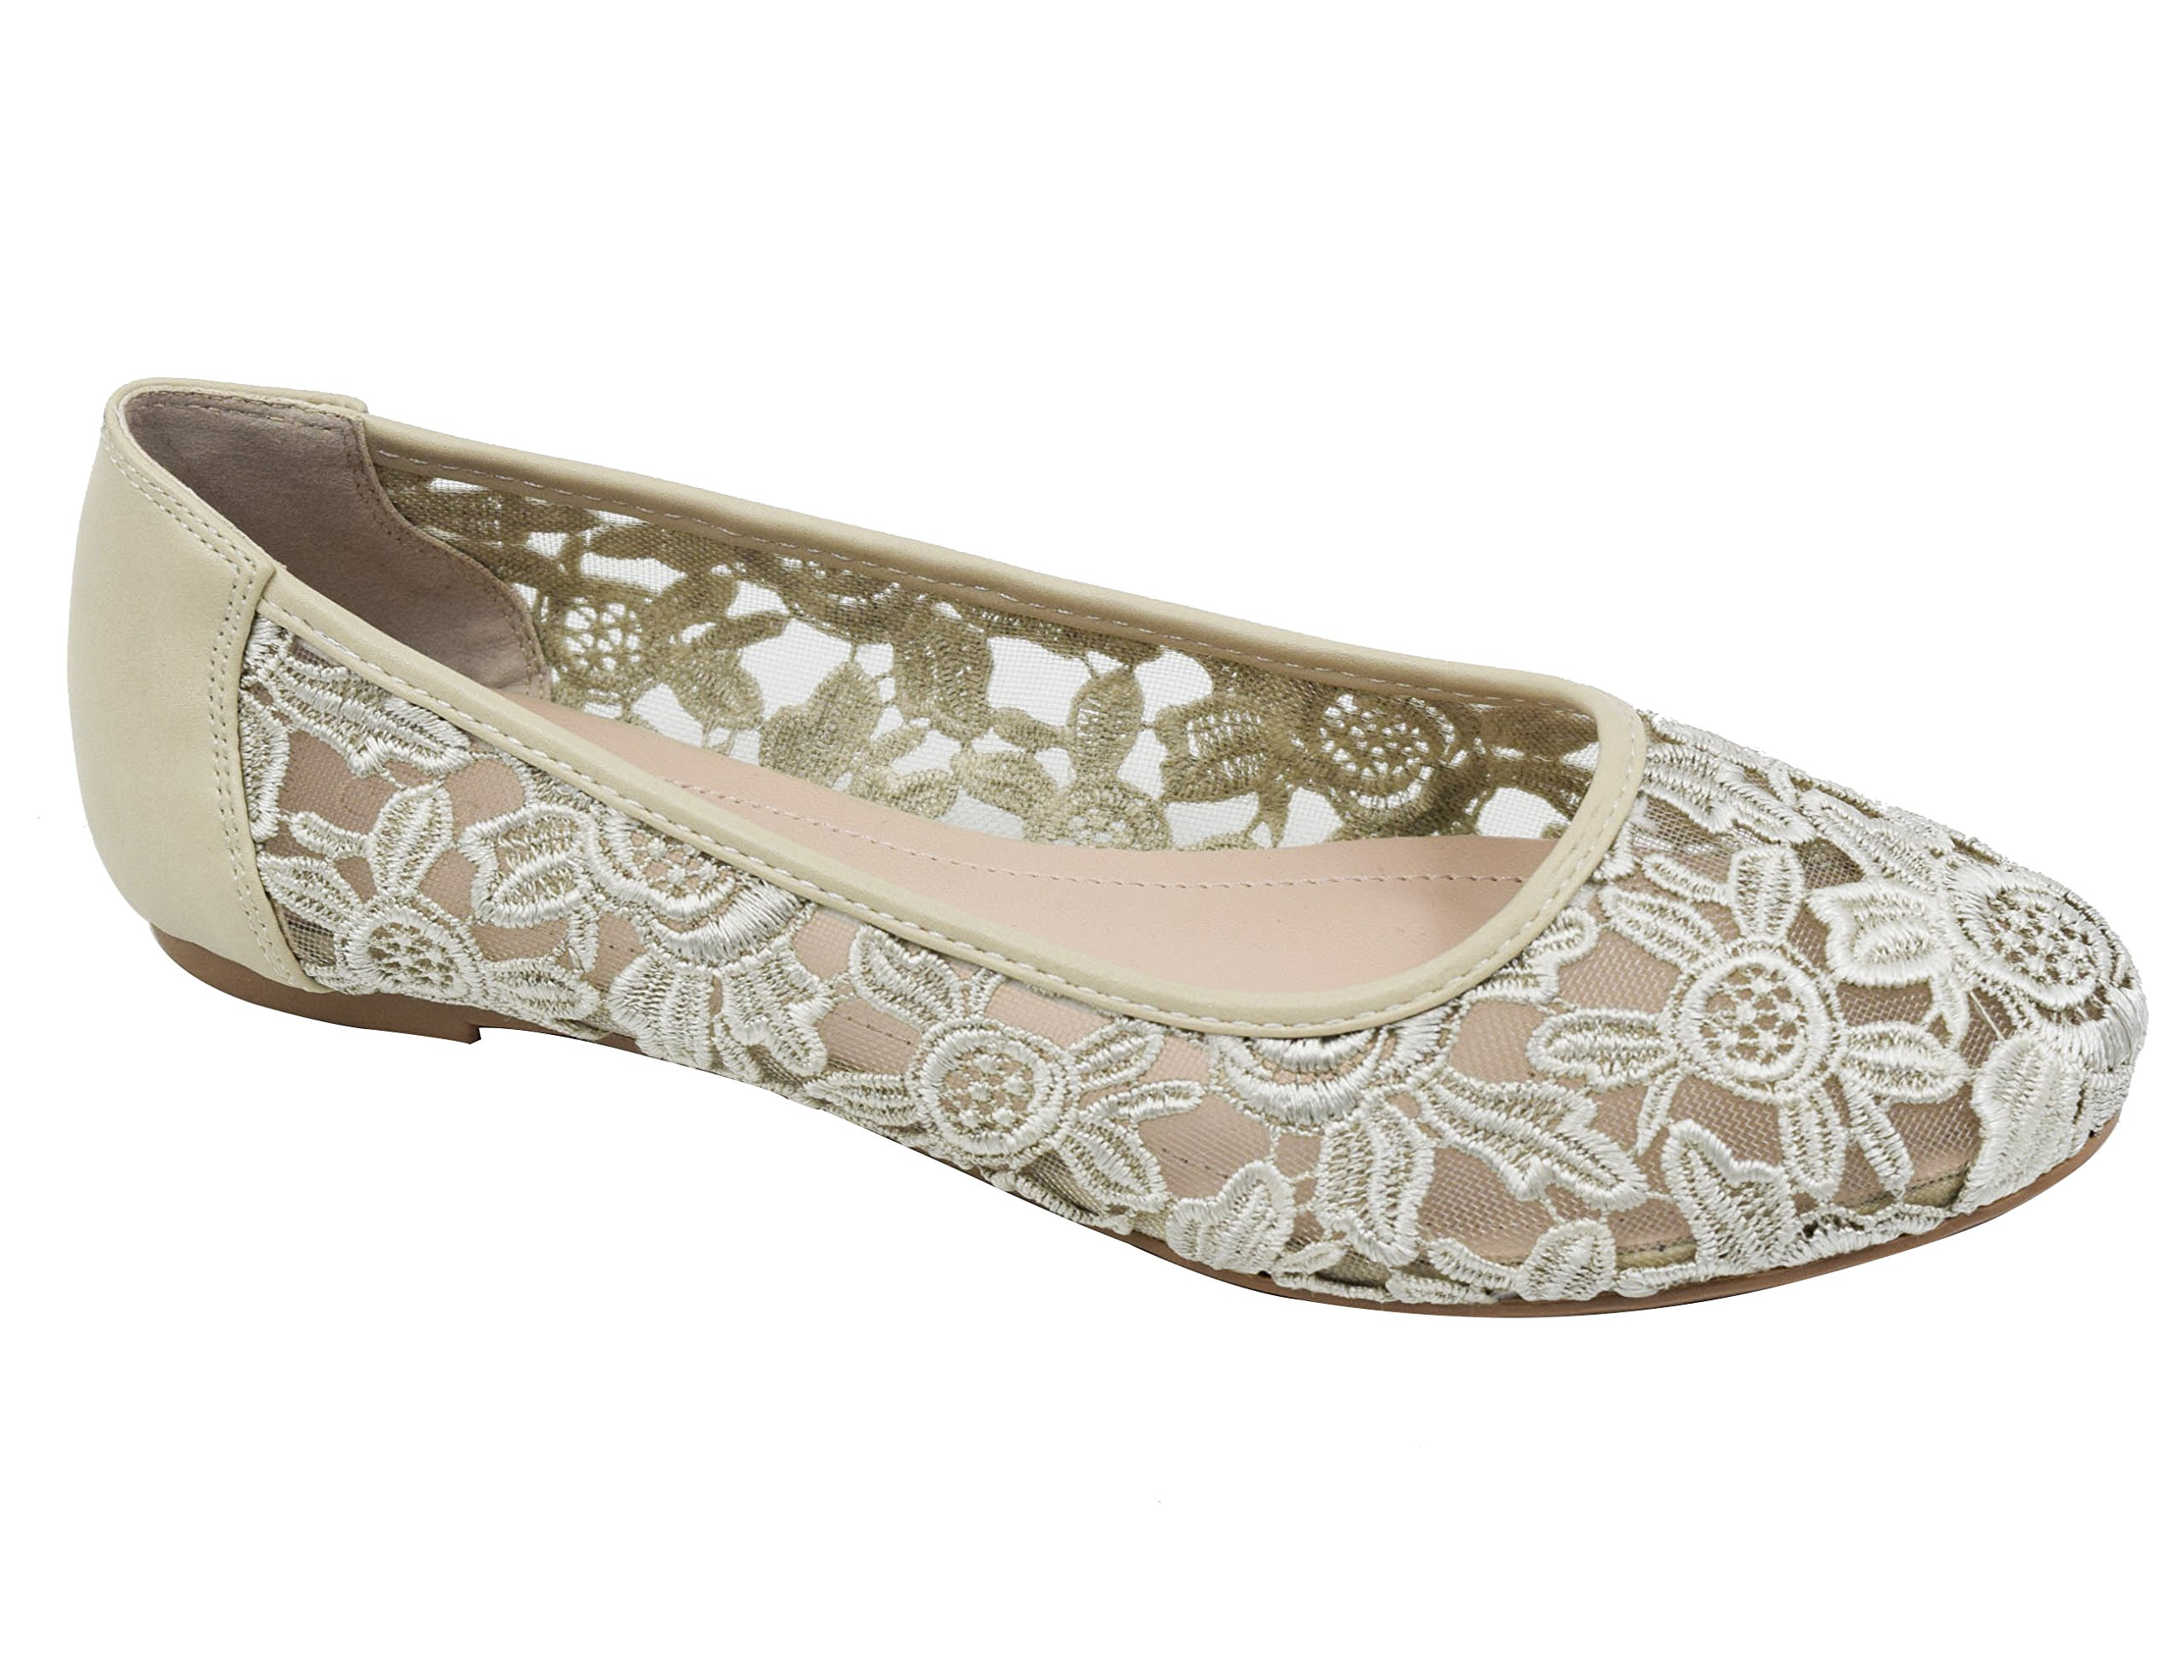 Greatonu Women Shoes Beige Cut Out Slip On Synthetic Loafers Lace Ballet Flats 8 US